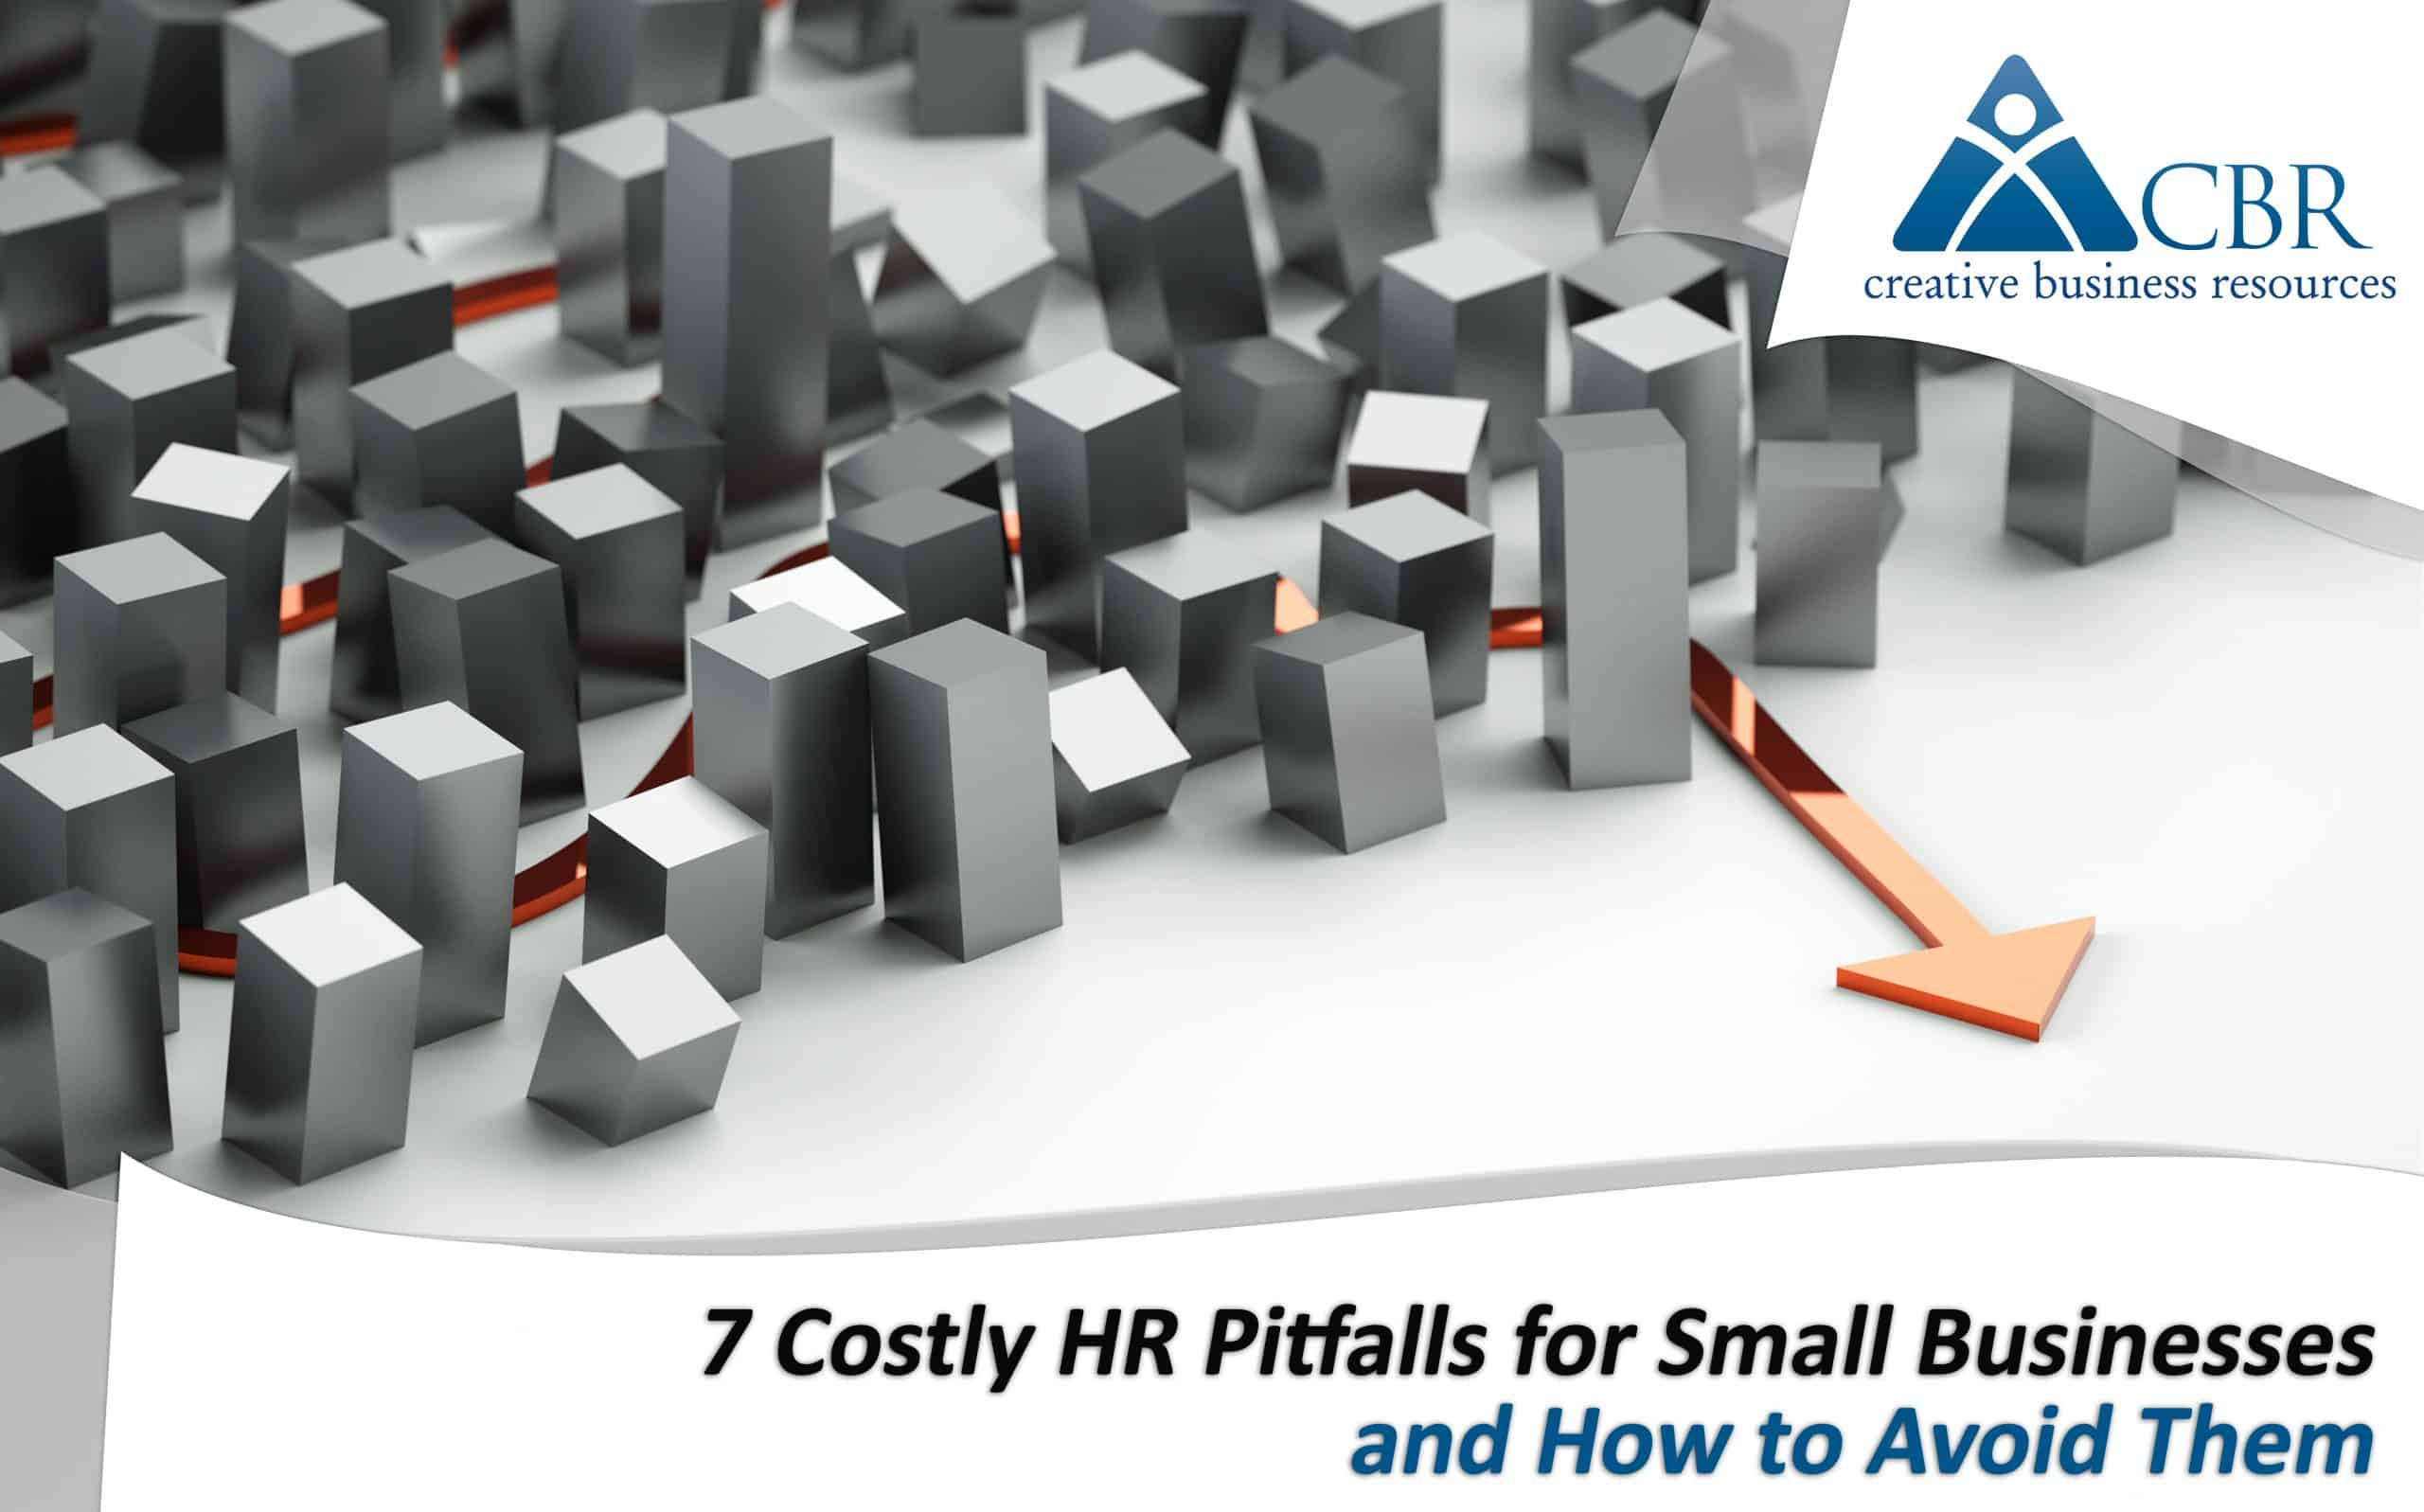 7 Costly HR Pitfalls for Small Businesses and how to avoid them